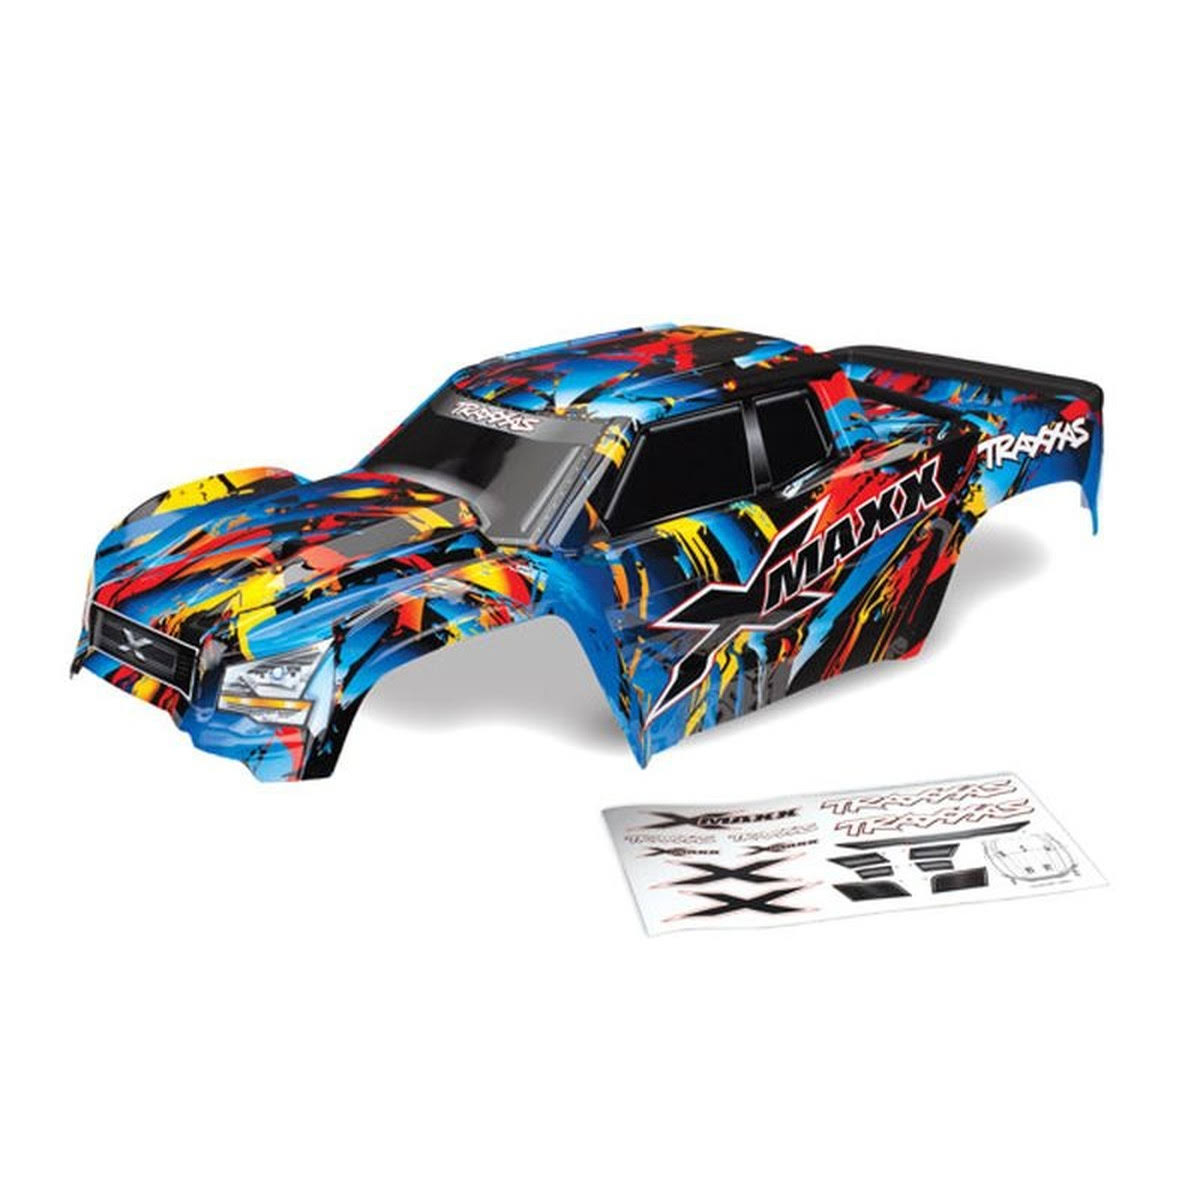 Traxxas X-Maxx Rock N Roll Painted Body Assembled W/tailgate Protector